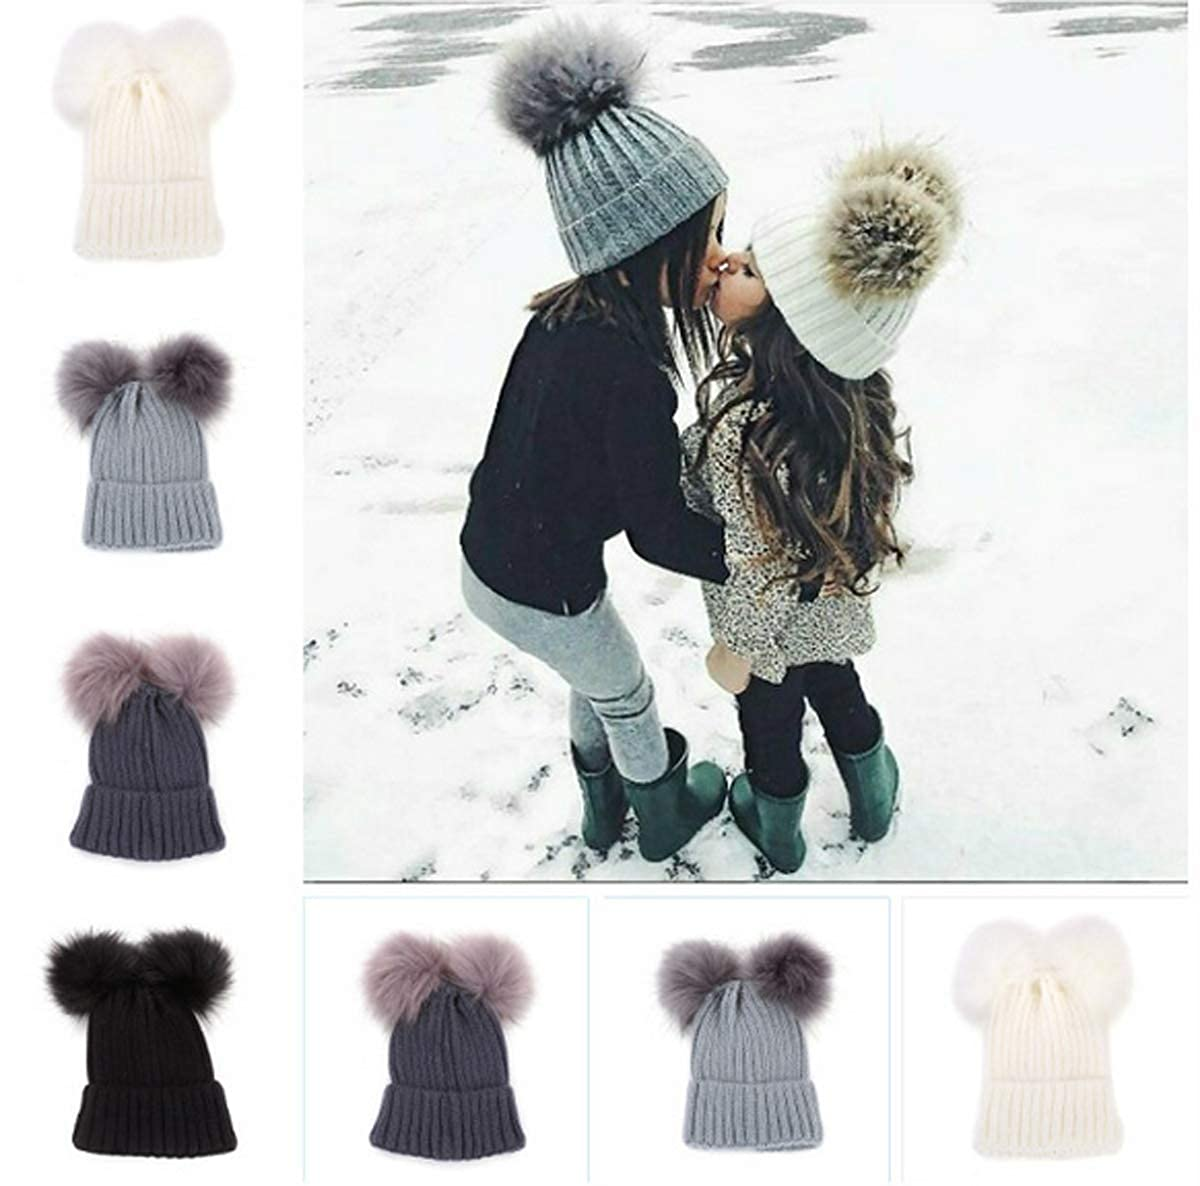 Diconna Unisex Toddler Kid Winter Warm Hat Cable Knit Pompom Crochet Beanie Cap